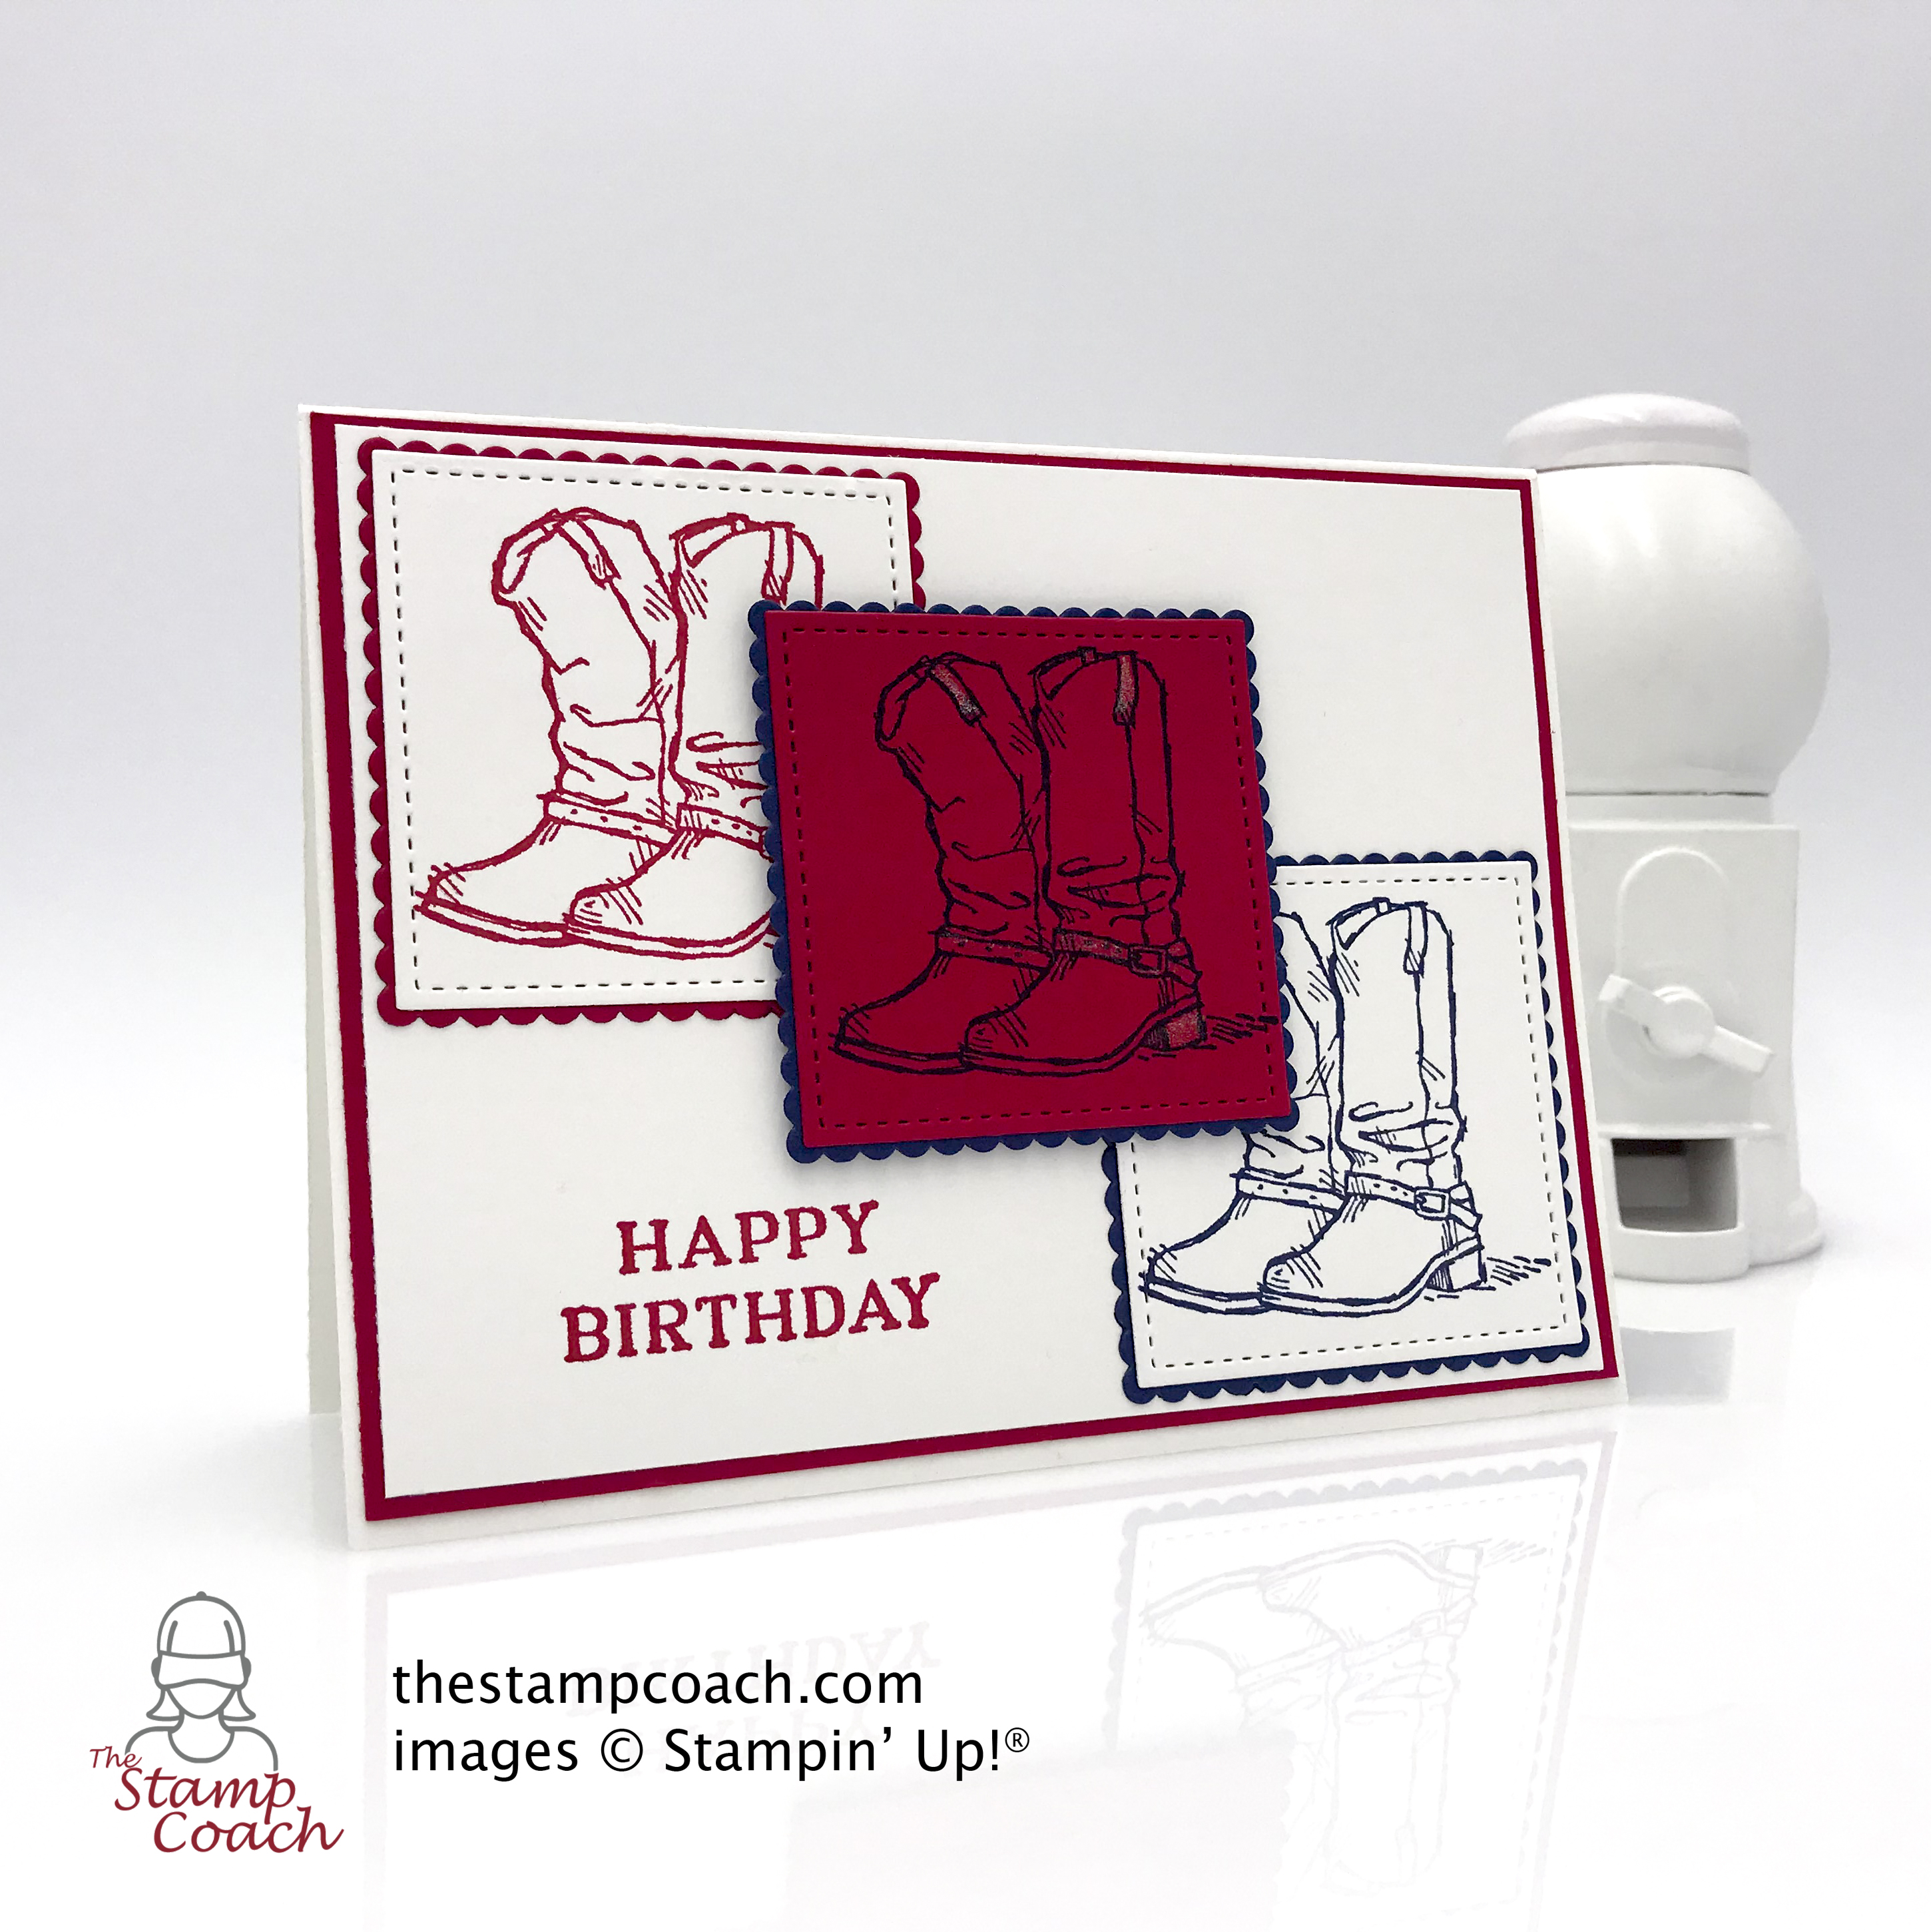 Country Living birthday card made by Linda Krueger of thestampcoach.com